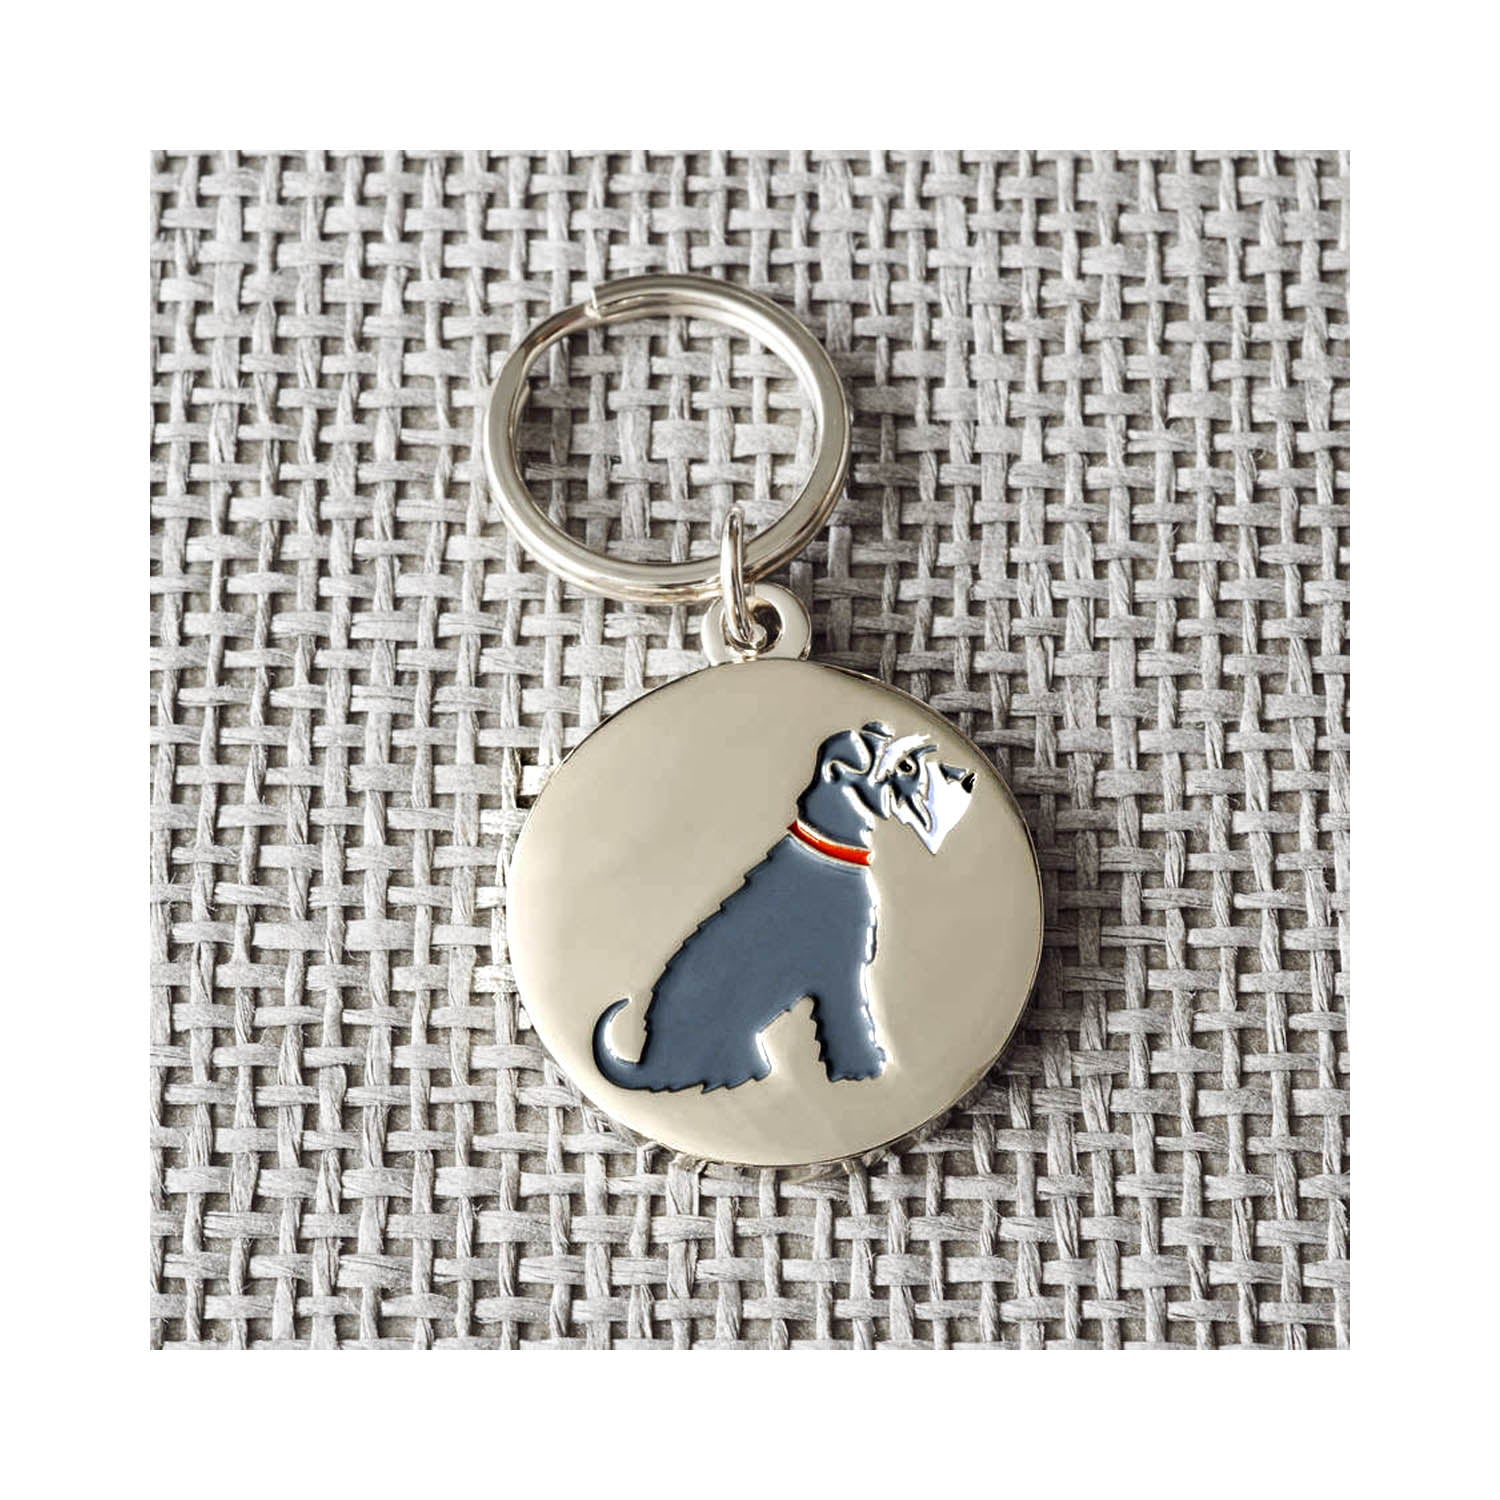 Dog Lover Gifts available at Dog Krazy Gifts - Eddie The Grey and White Schnauzer Cufflink and Dog Tag Set - part of the Sweet William range available from Dog Krazy Gifts